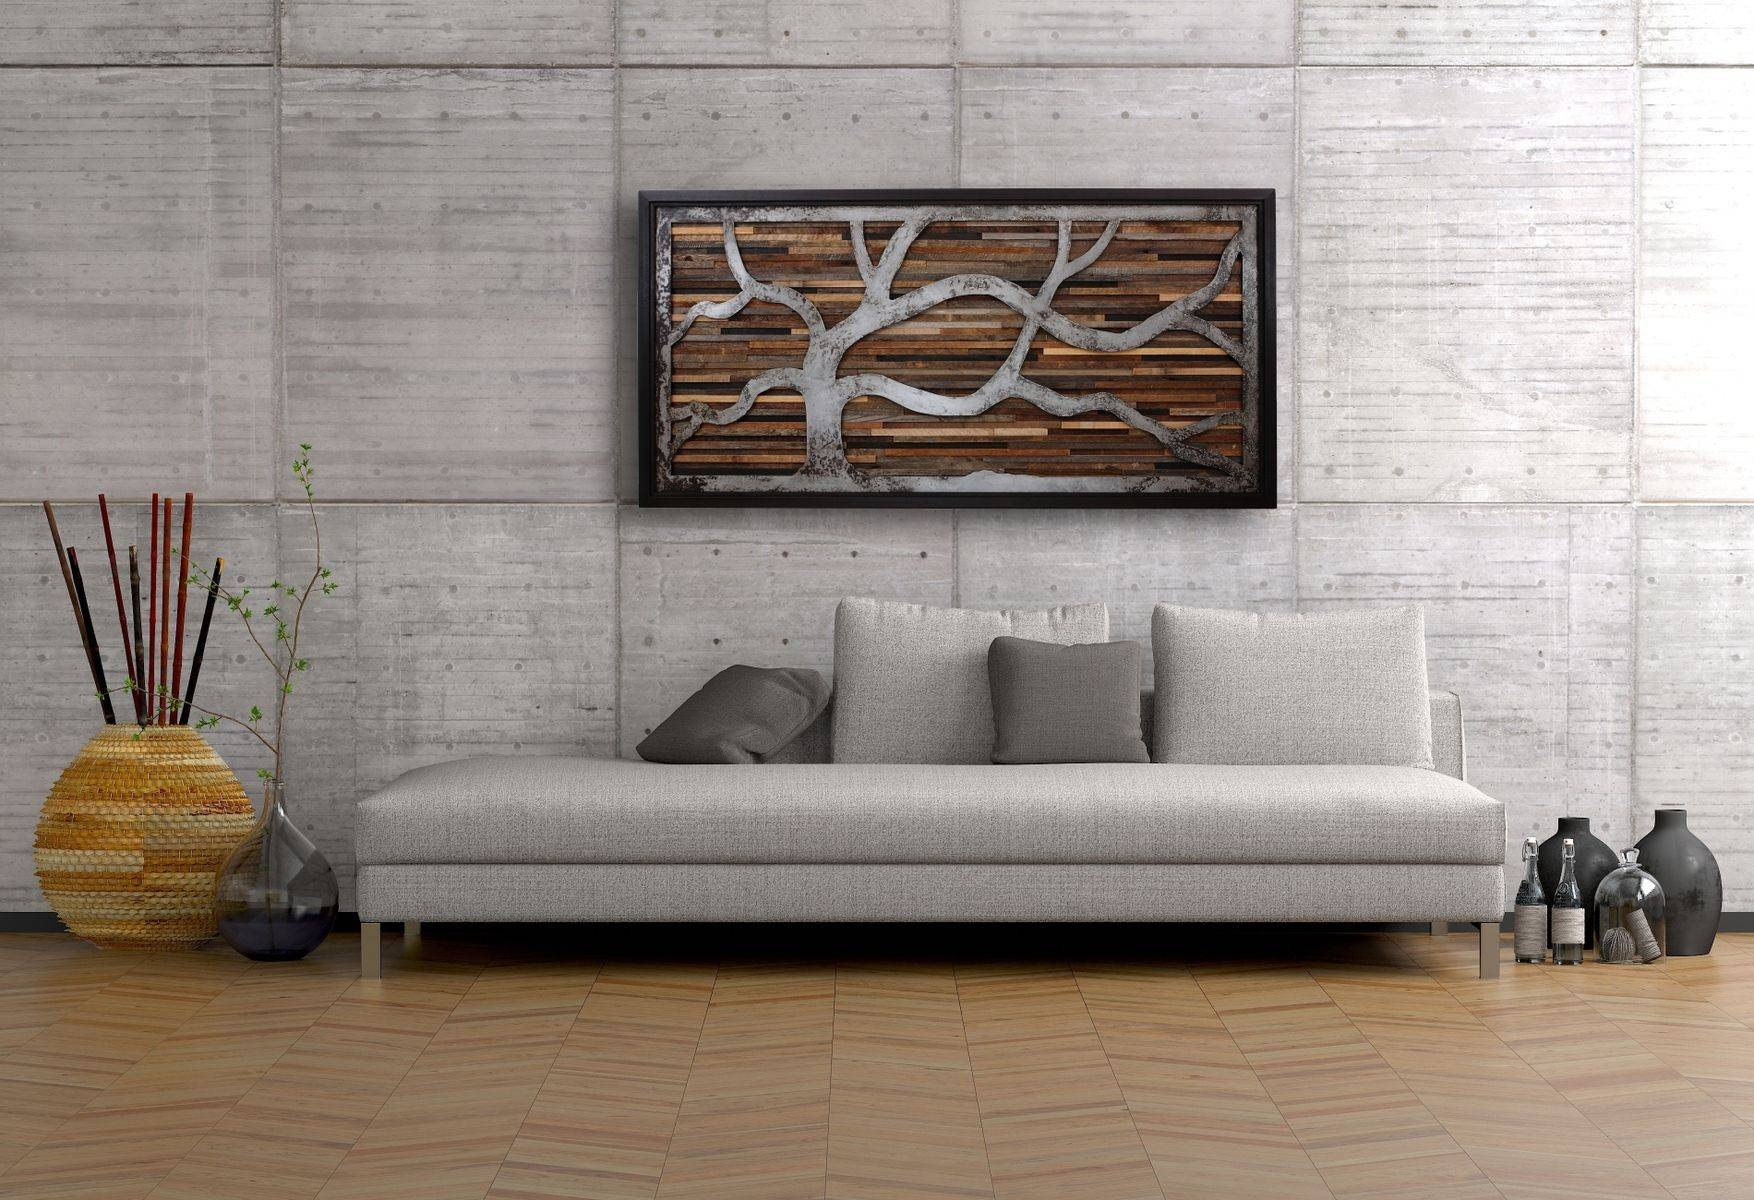 Handmade Reclaimed Wood Wall Art Made Of Old Barnwood And Rustic With Regard To Most Recently Released Wall Art On Wood (View 15 of 20)